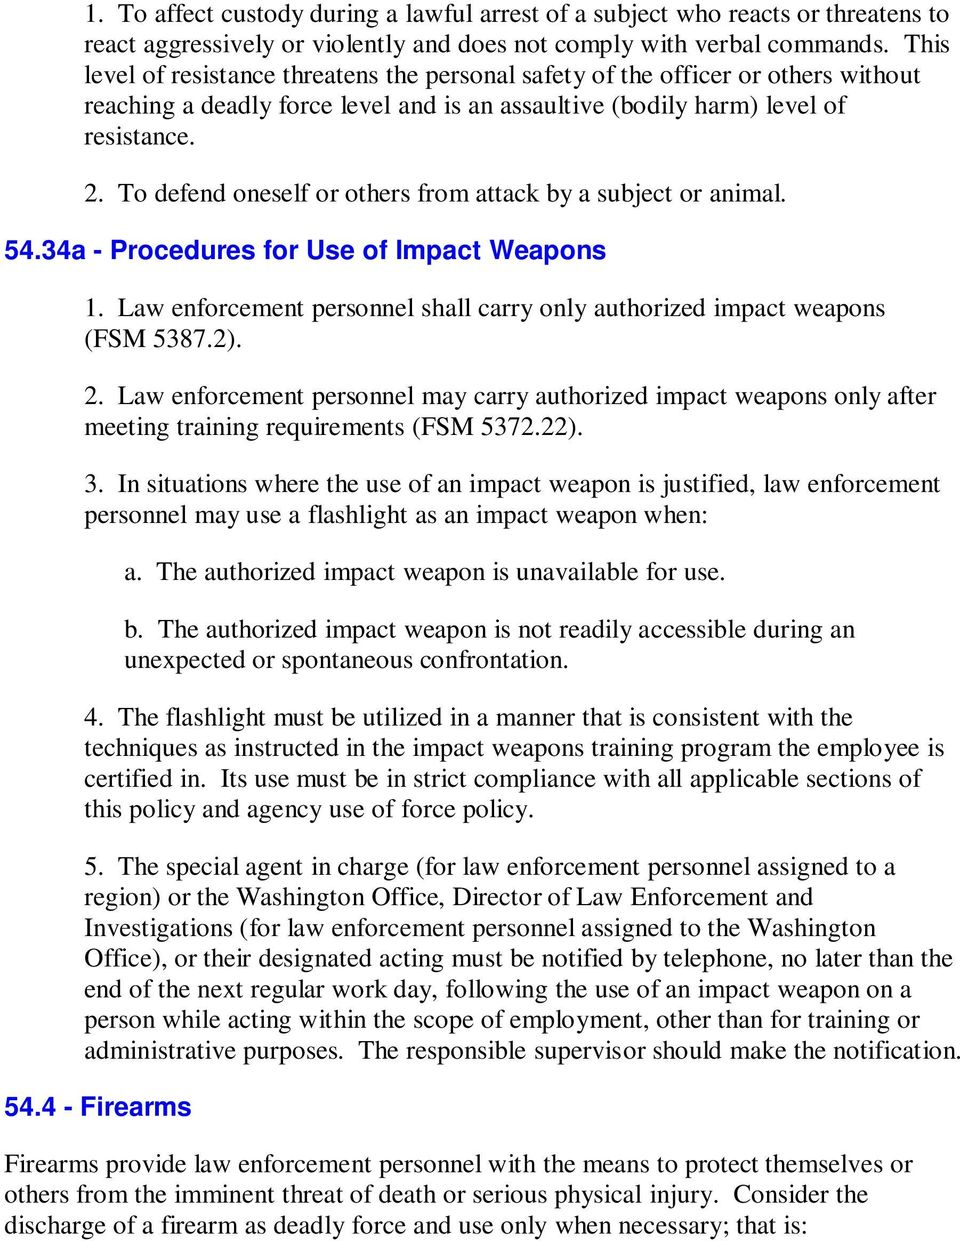 To defend oneself or others from attack by a subject or animal. 54.34a - Procedures for Use of Impact Weapons 1. Law enforcement personnel shall carry only authorized impact weapons (FSM 5387.2). 2.